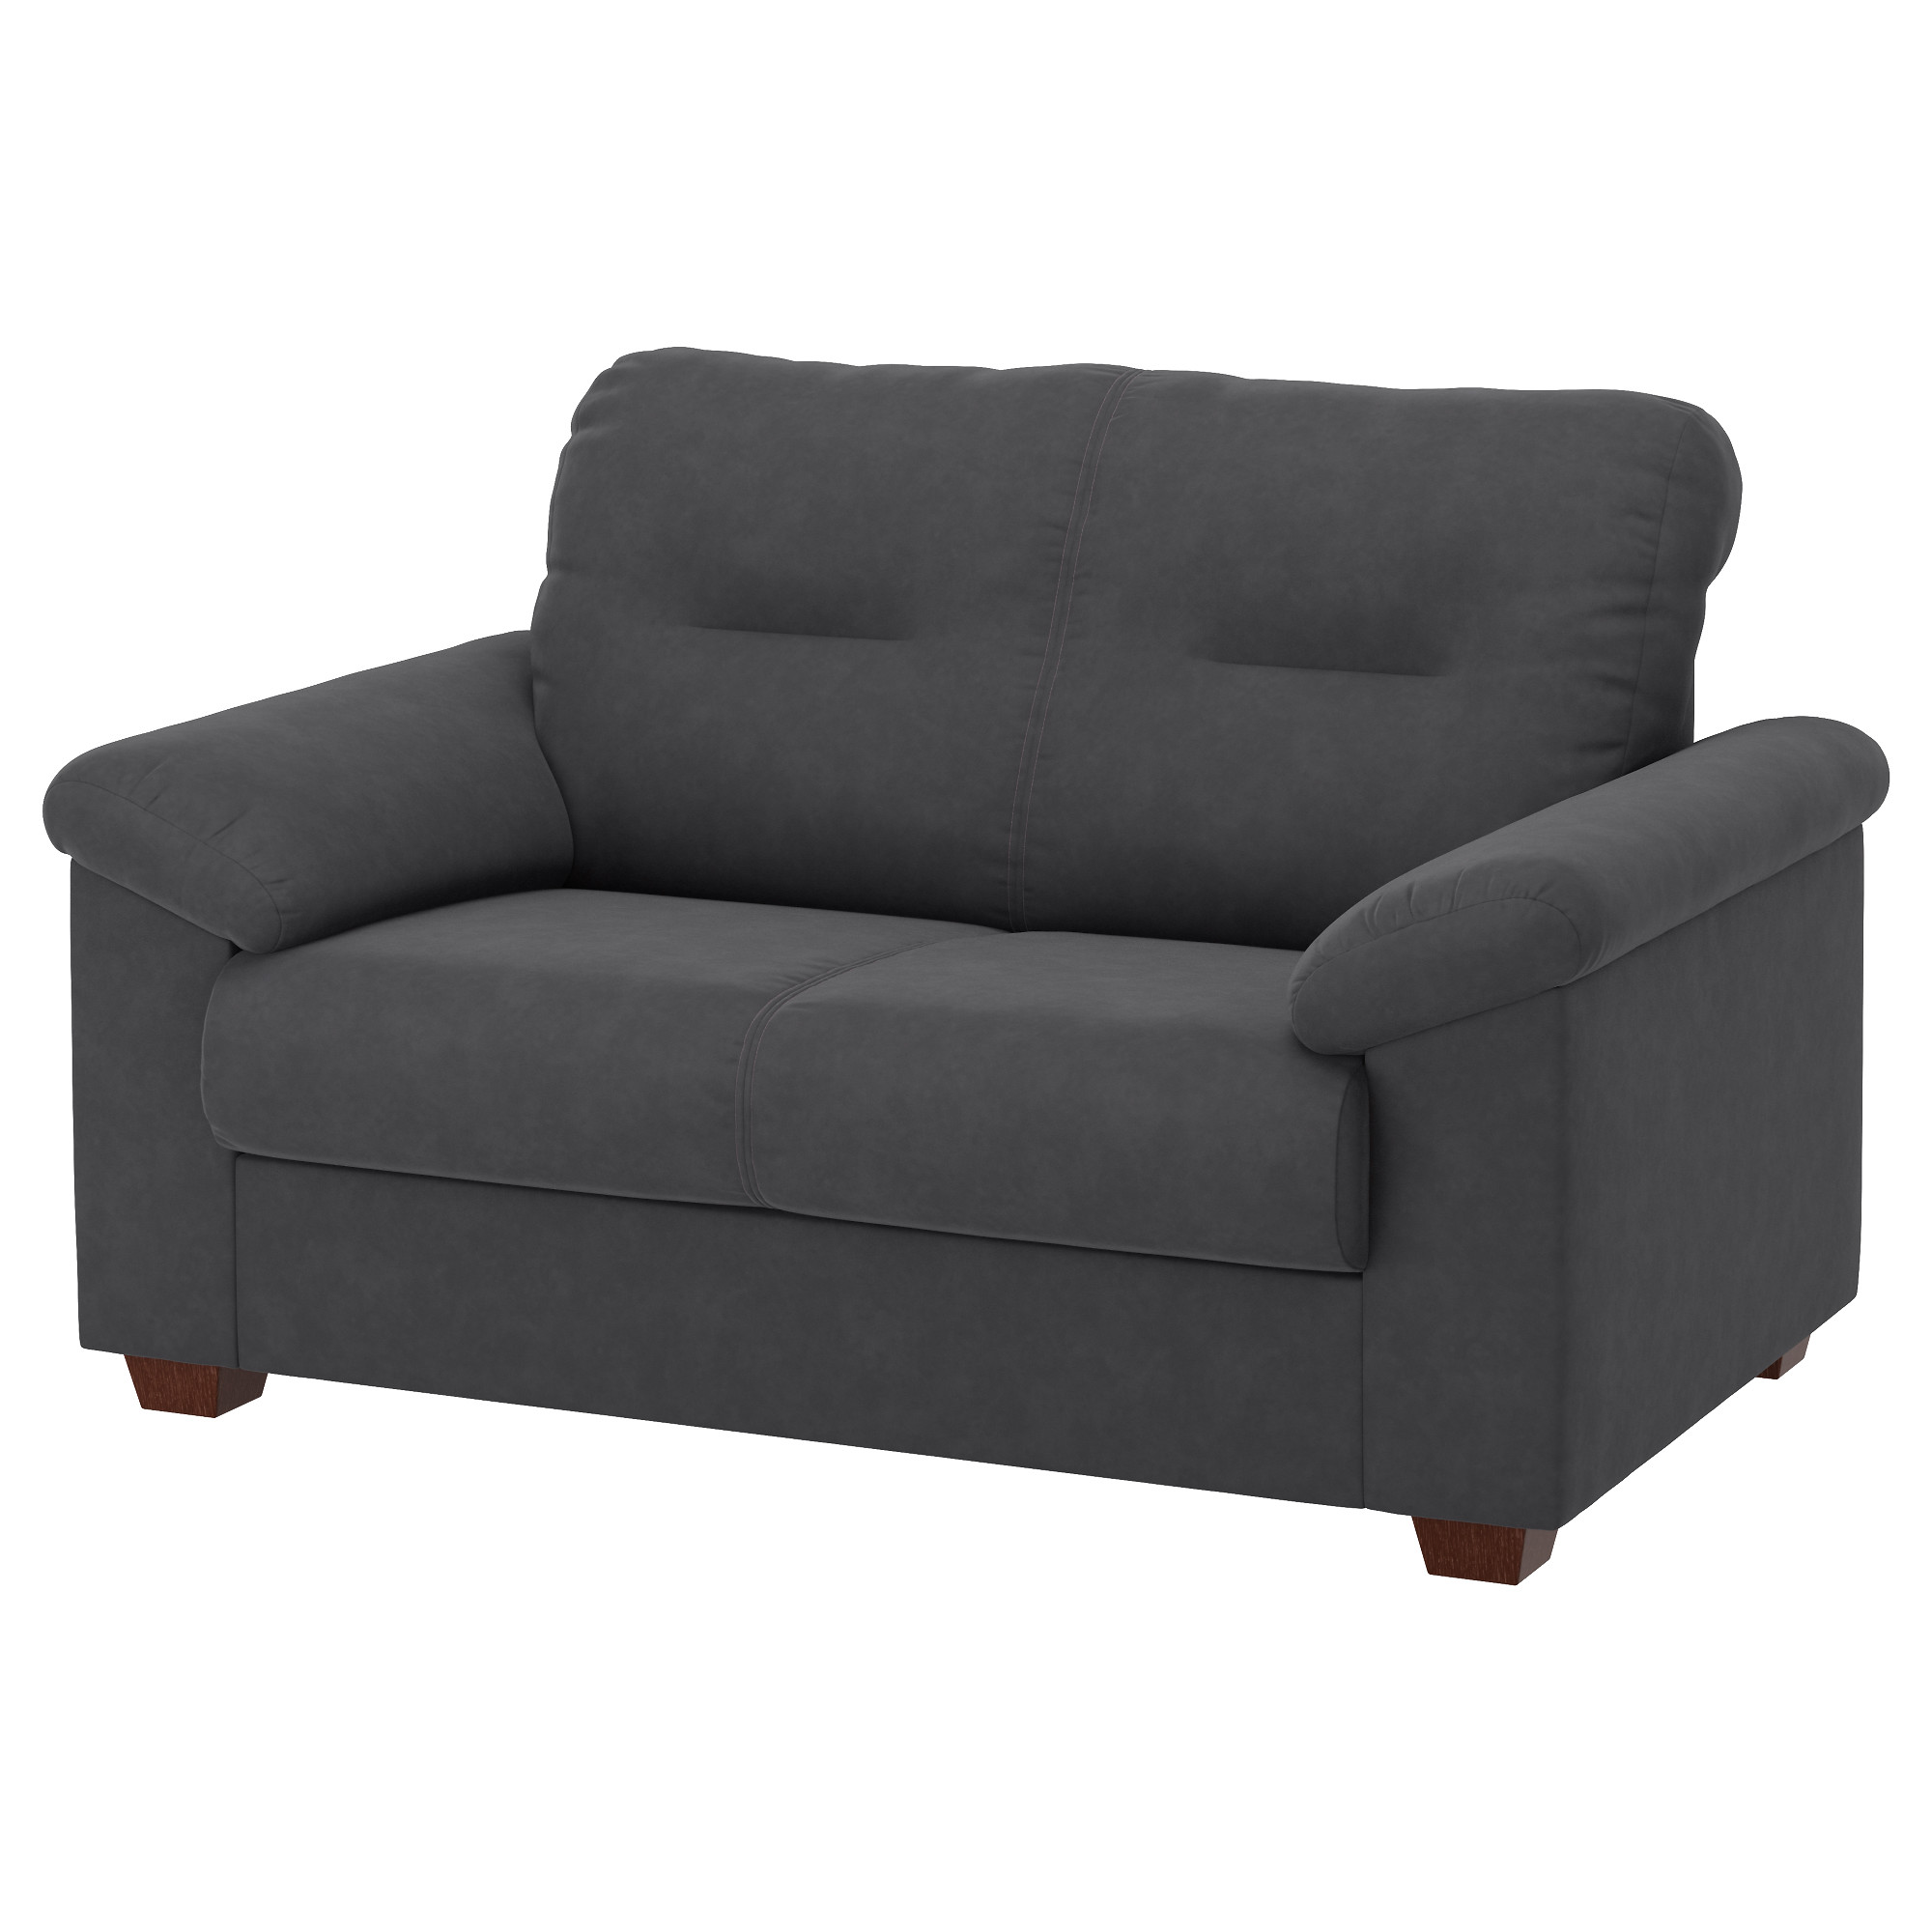 Sofas de ikea vilasund sofa bed with chaise longue - Modelos de sofas ...